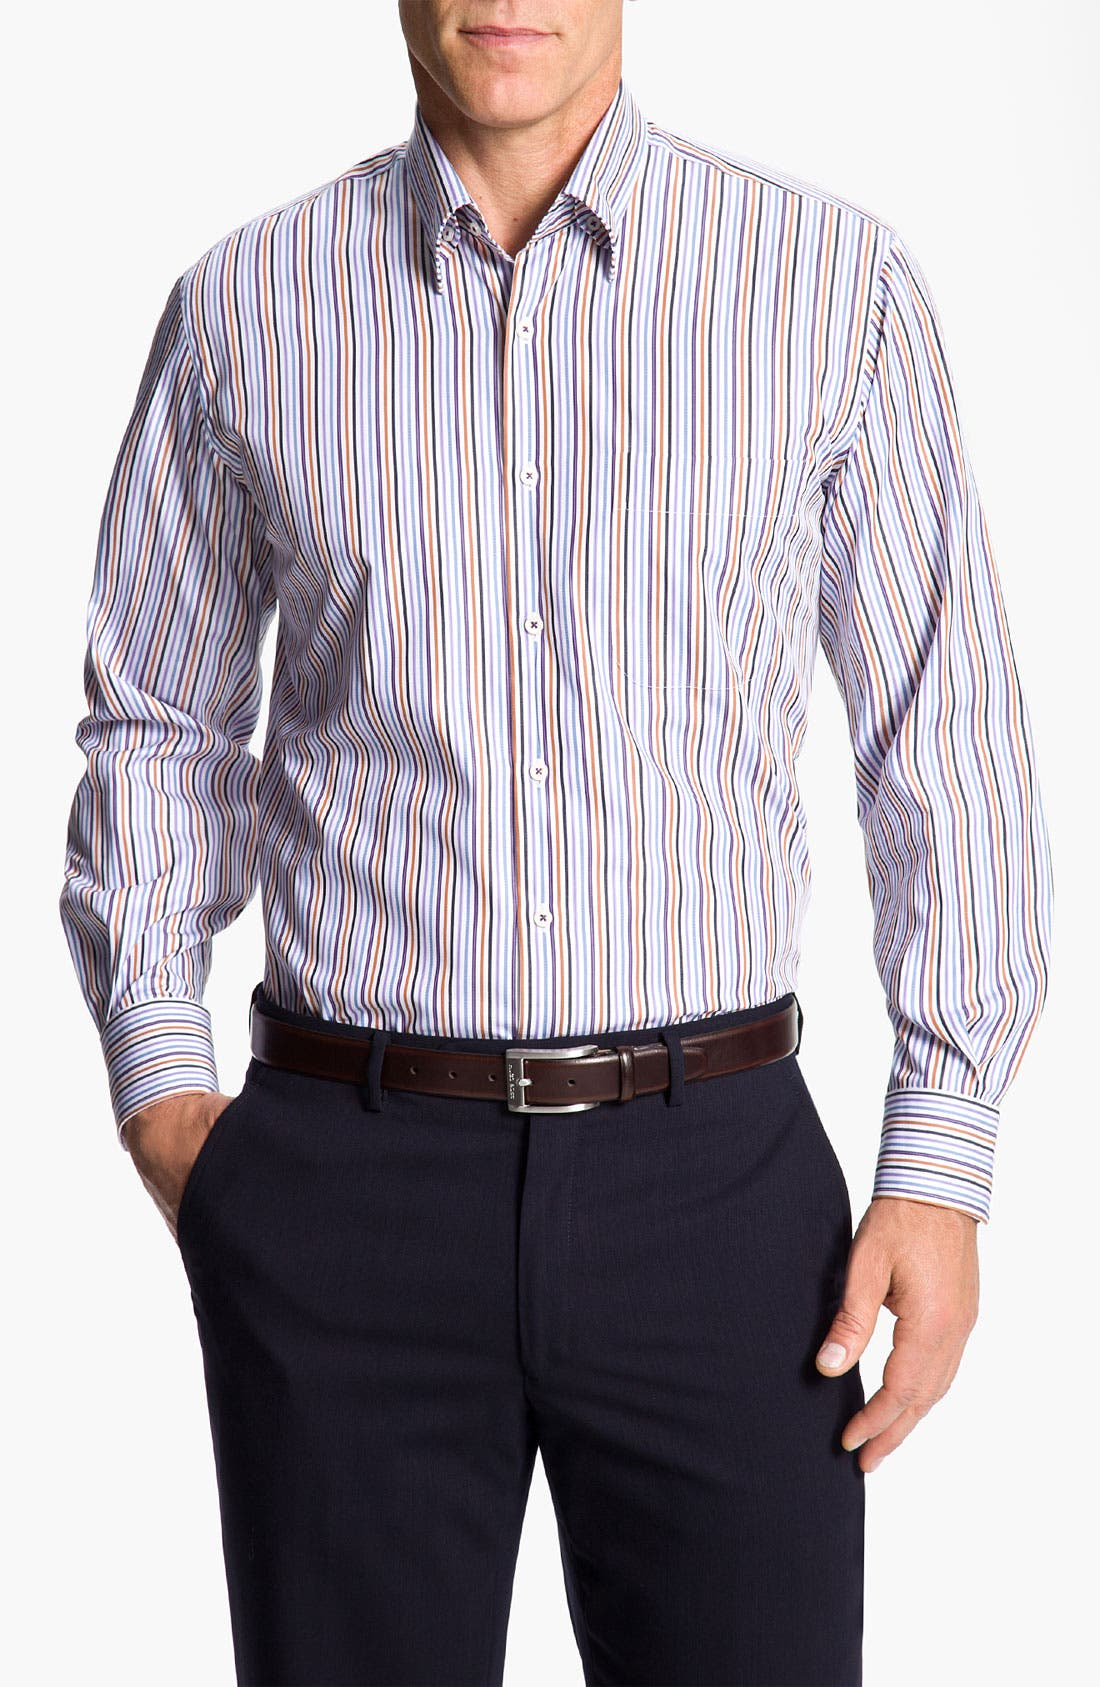 Alternate Image 1 Selected - Peter Millar 'Pinwheel Stripe' Sport Shirt